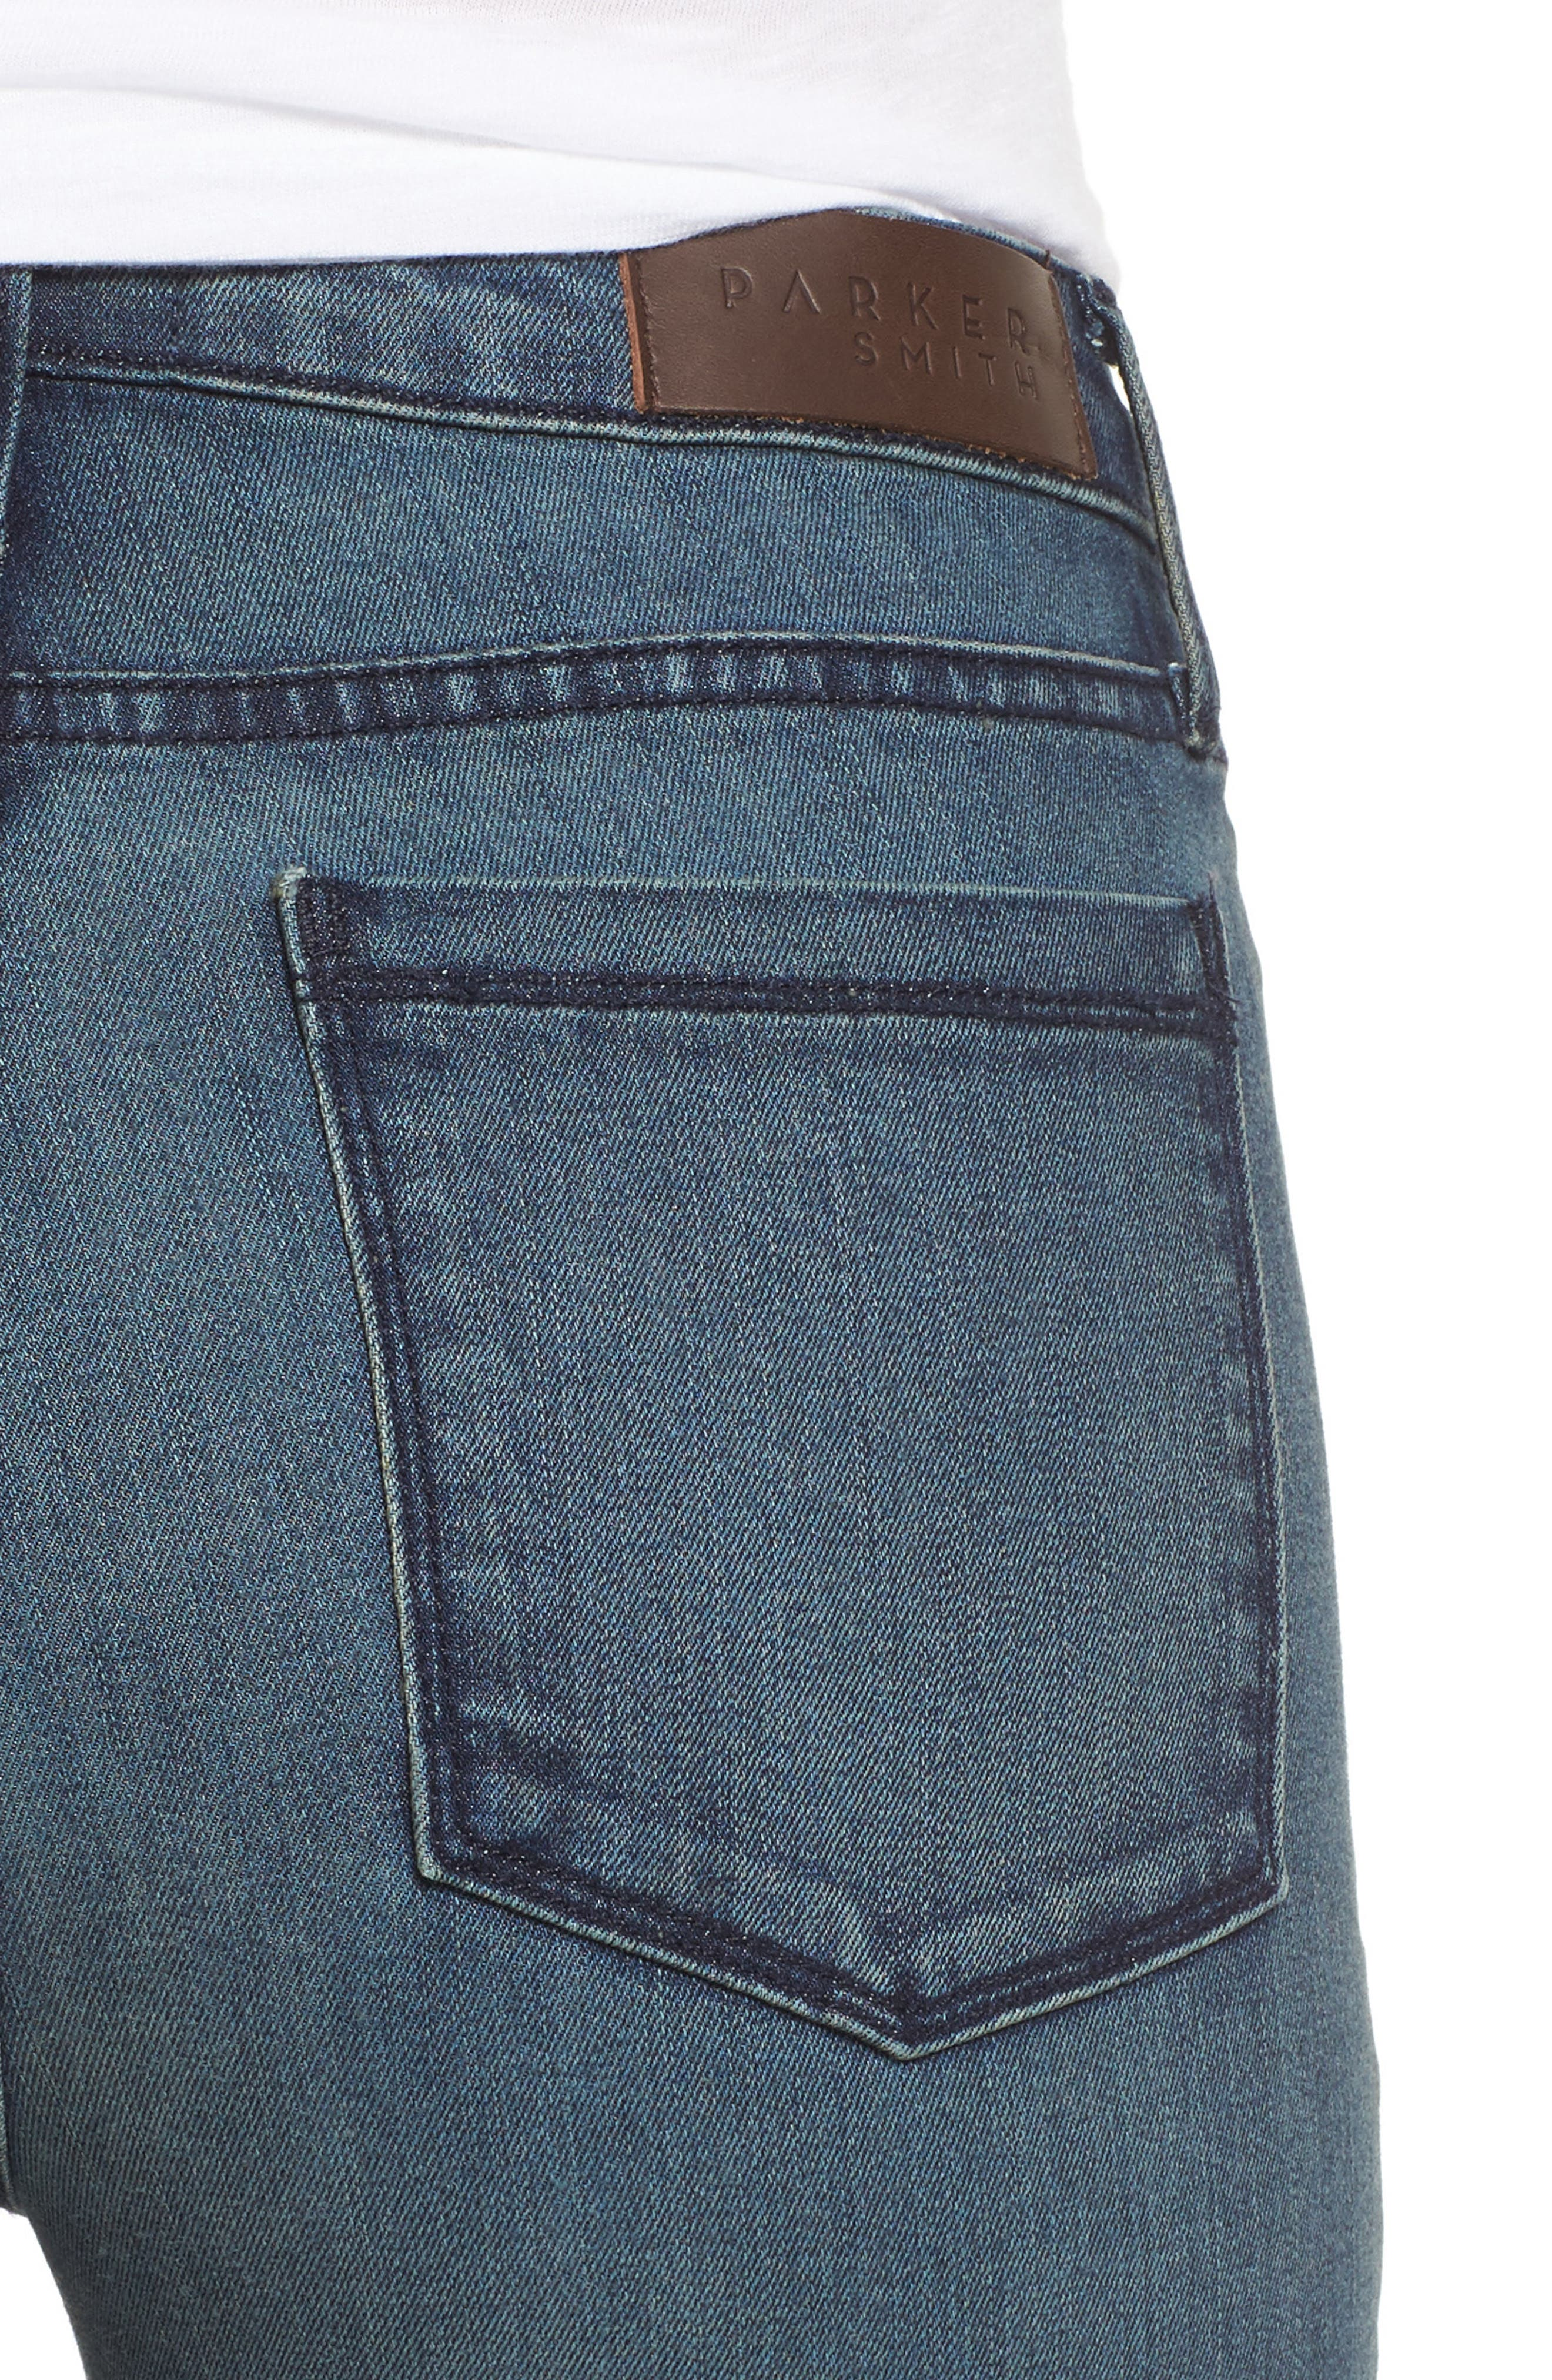 Alternate Image 4  - PARKER SMITH Pin-Up Straight Crop Jeans (Ocean Boulevard)